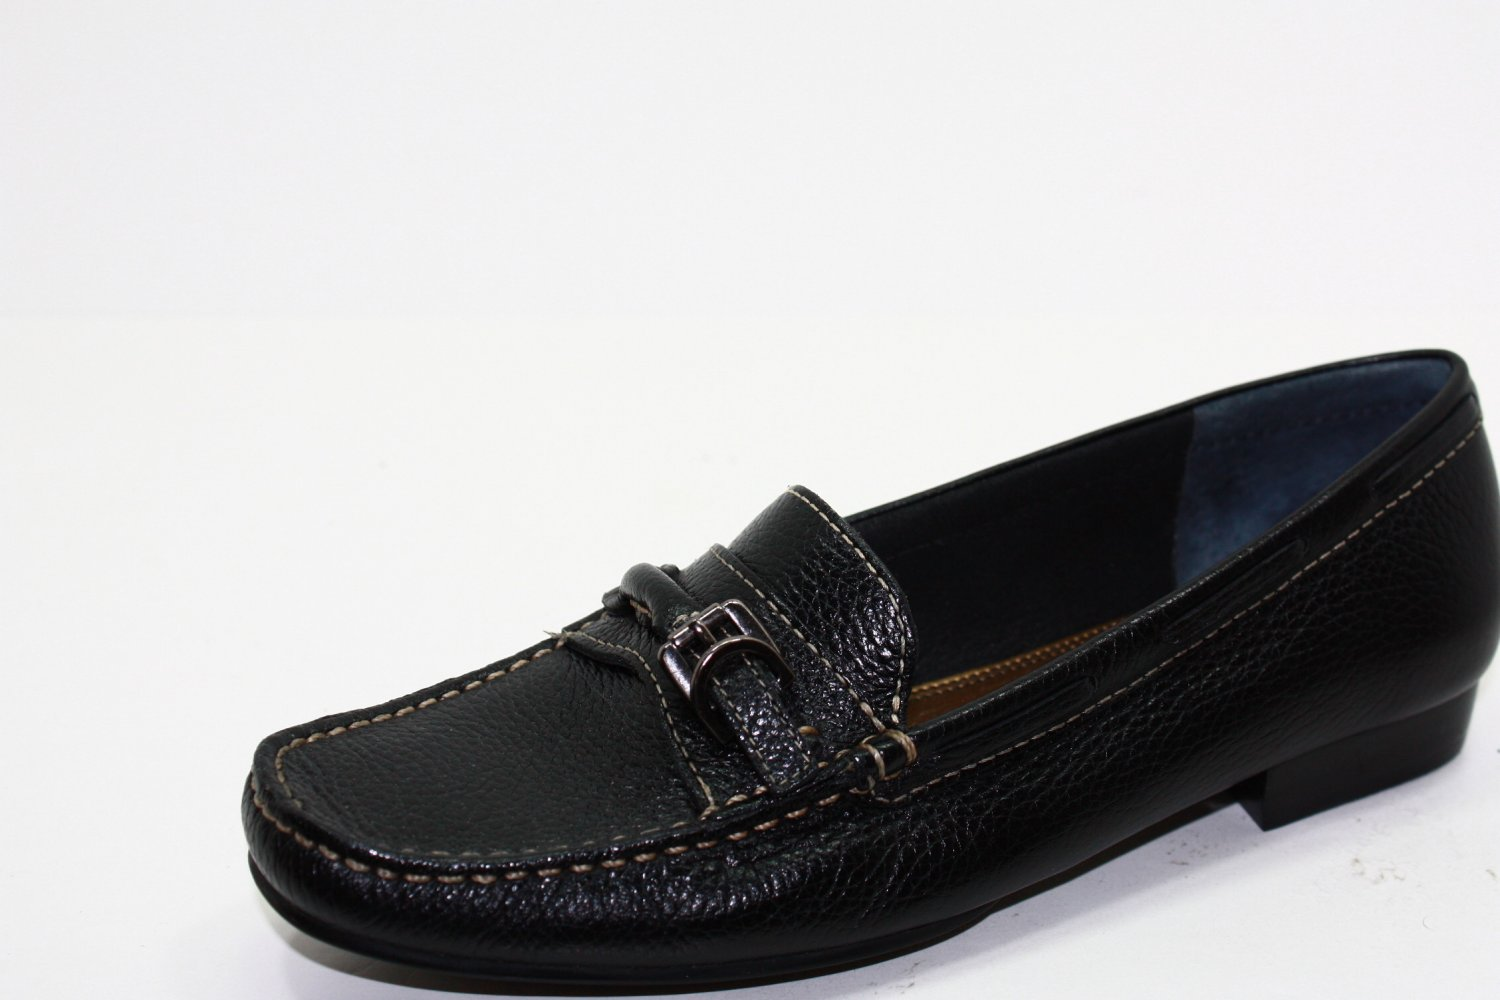 UNISA NICK Loafers BLACK Womens Shoes 6.5